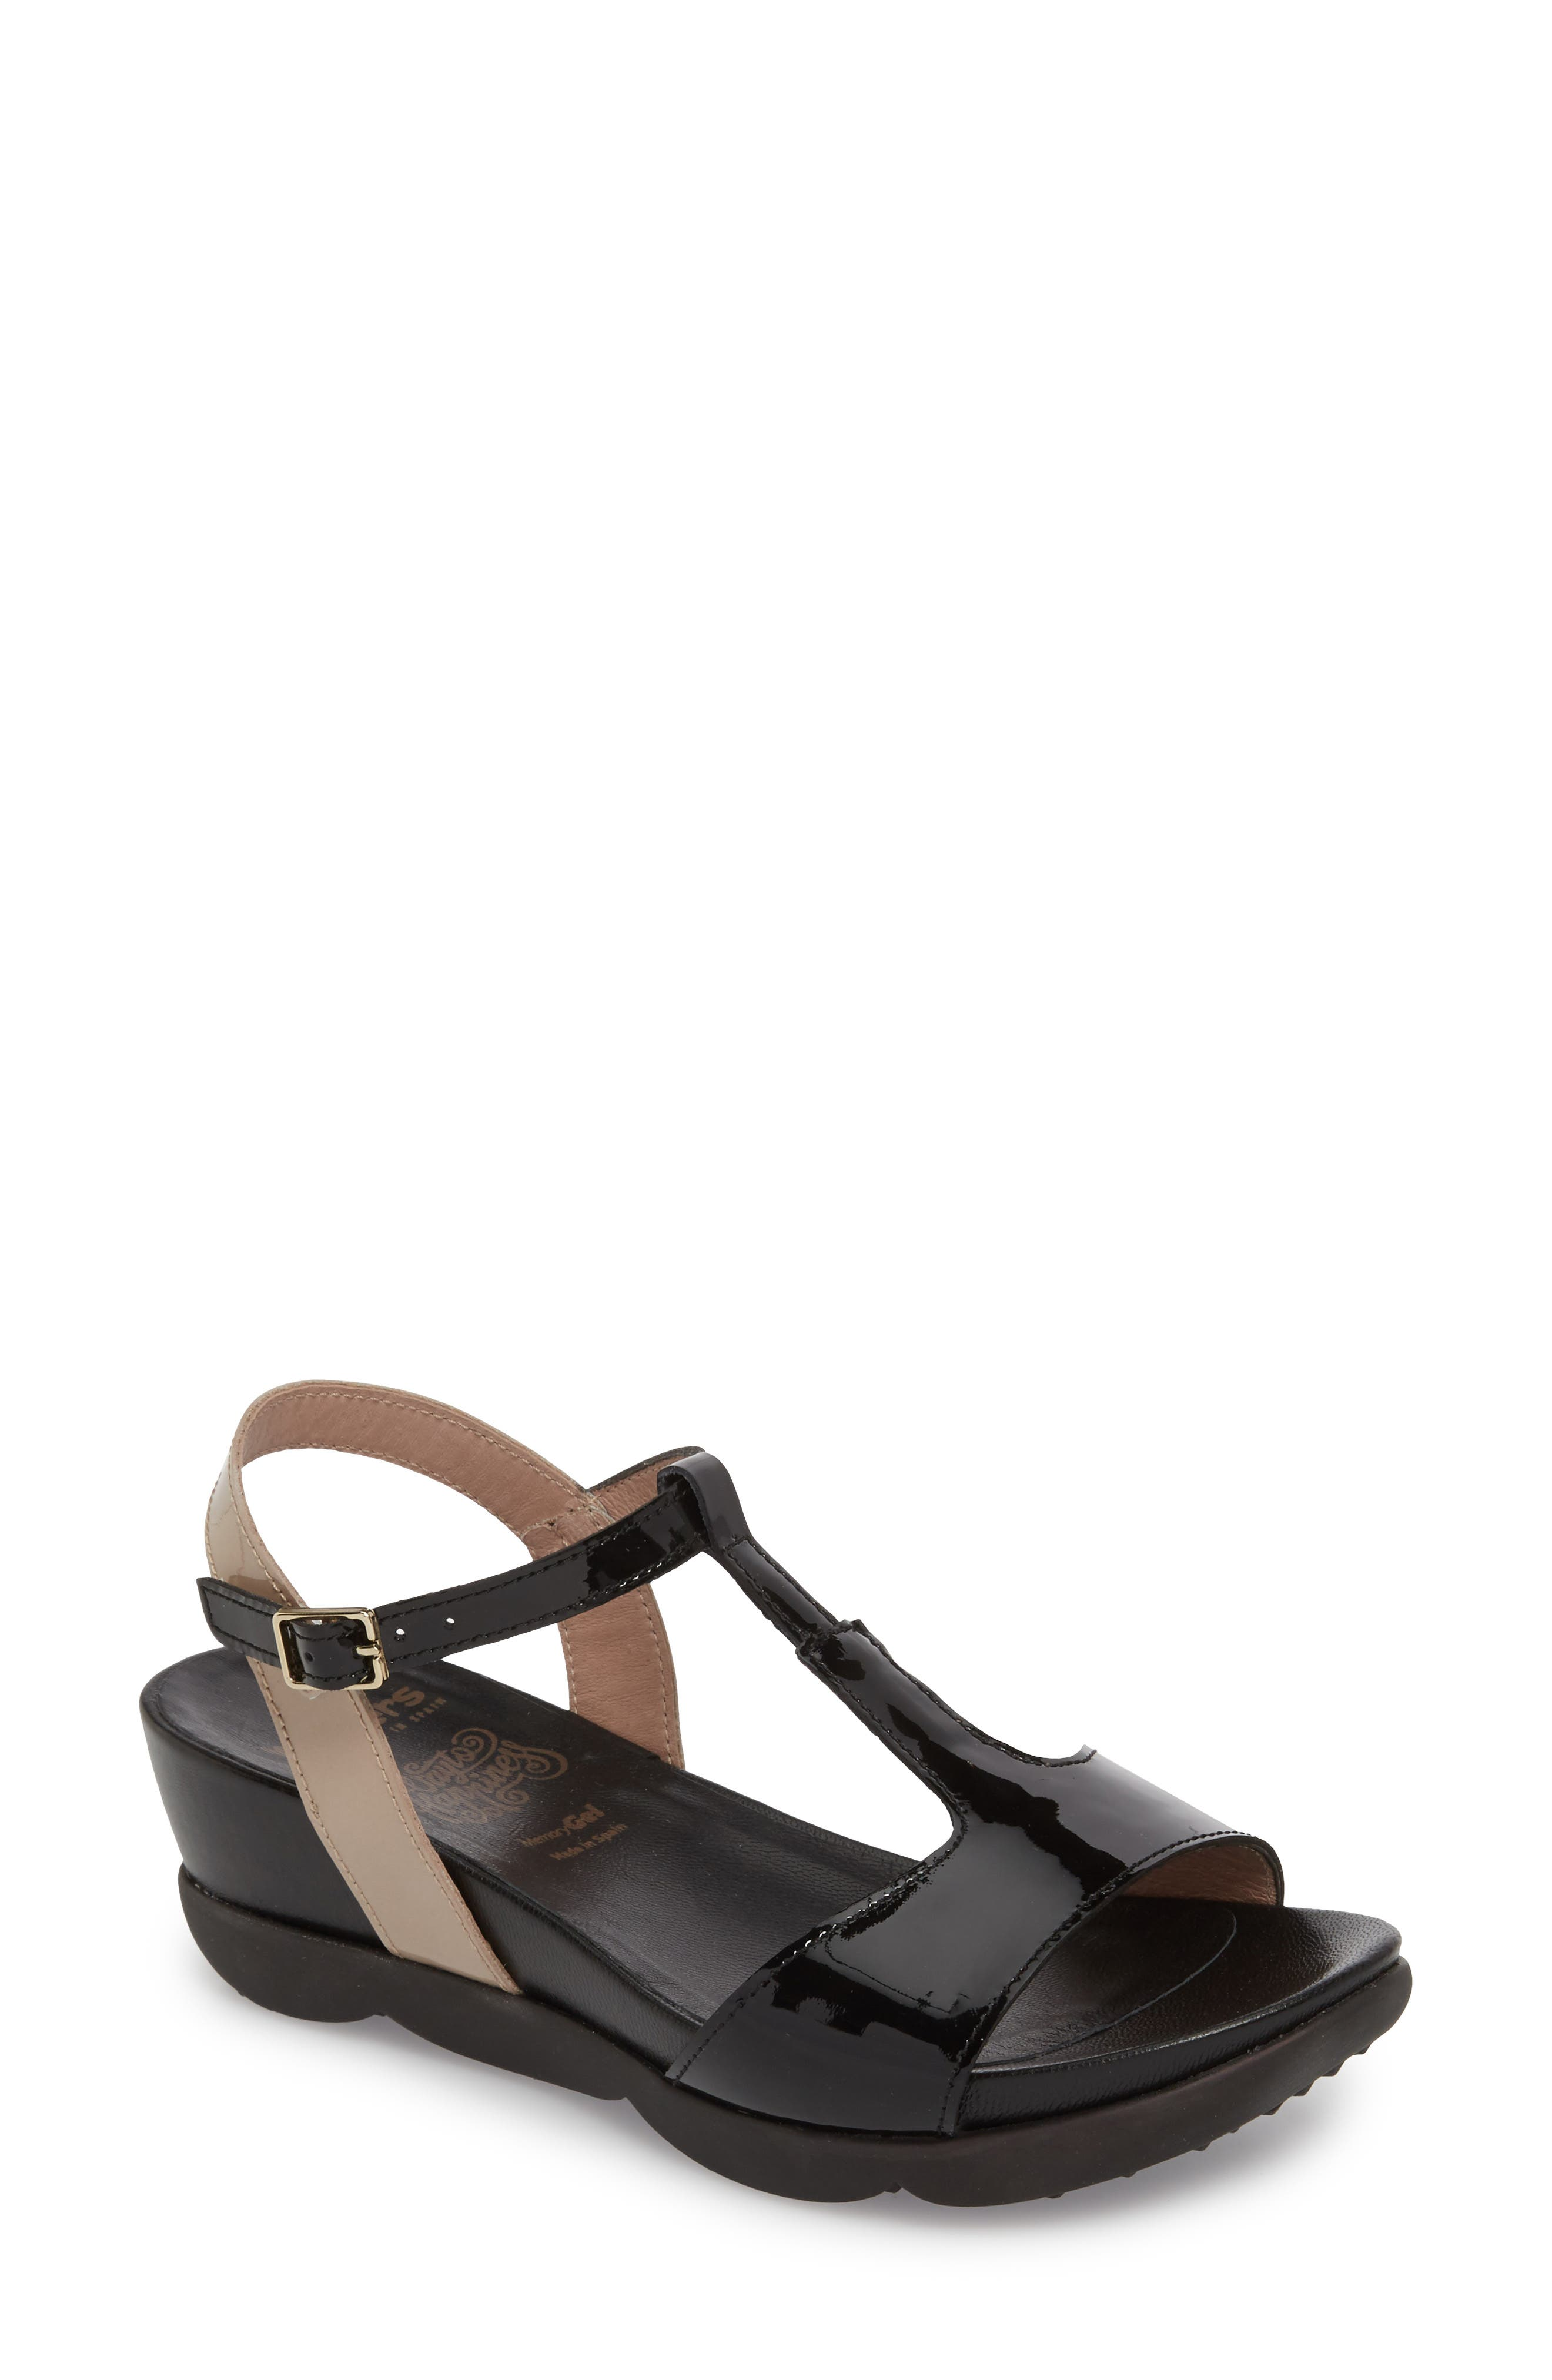 Wonders Wedge Sandal, Black